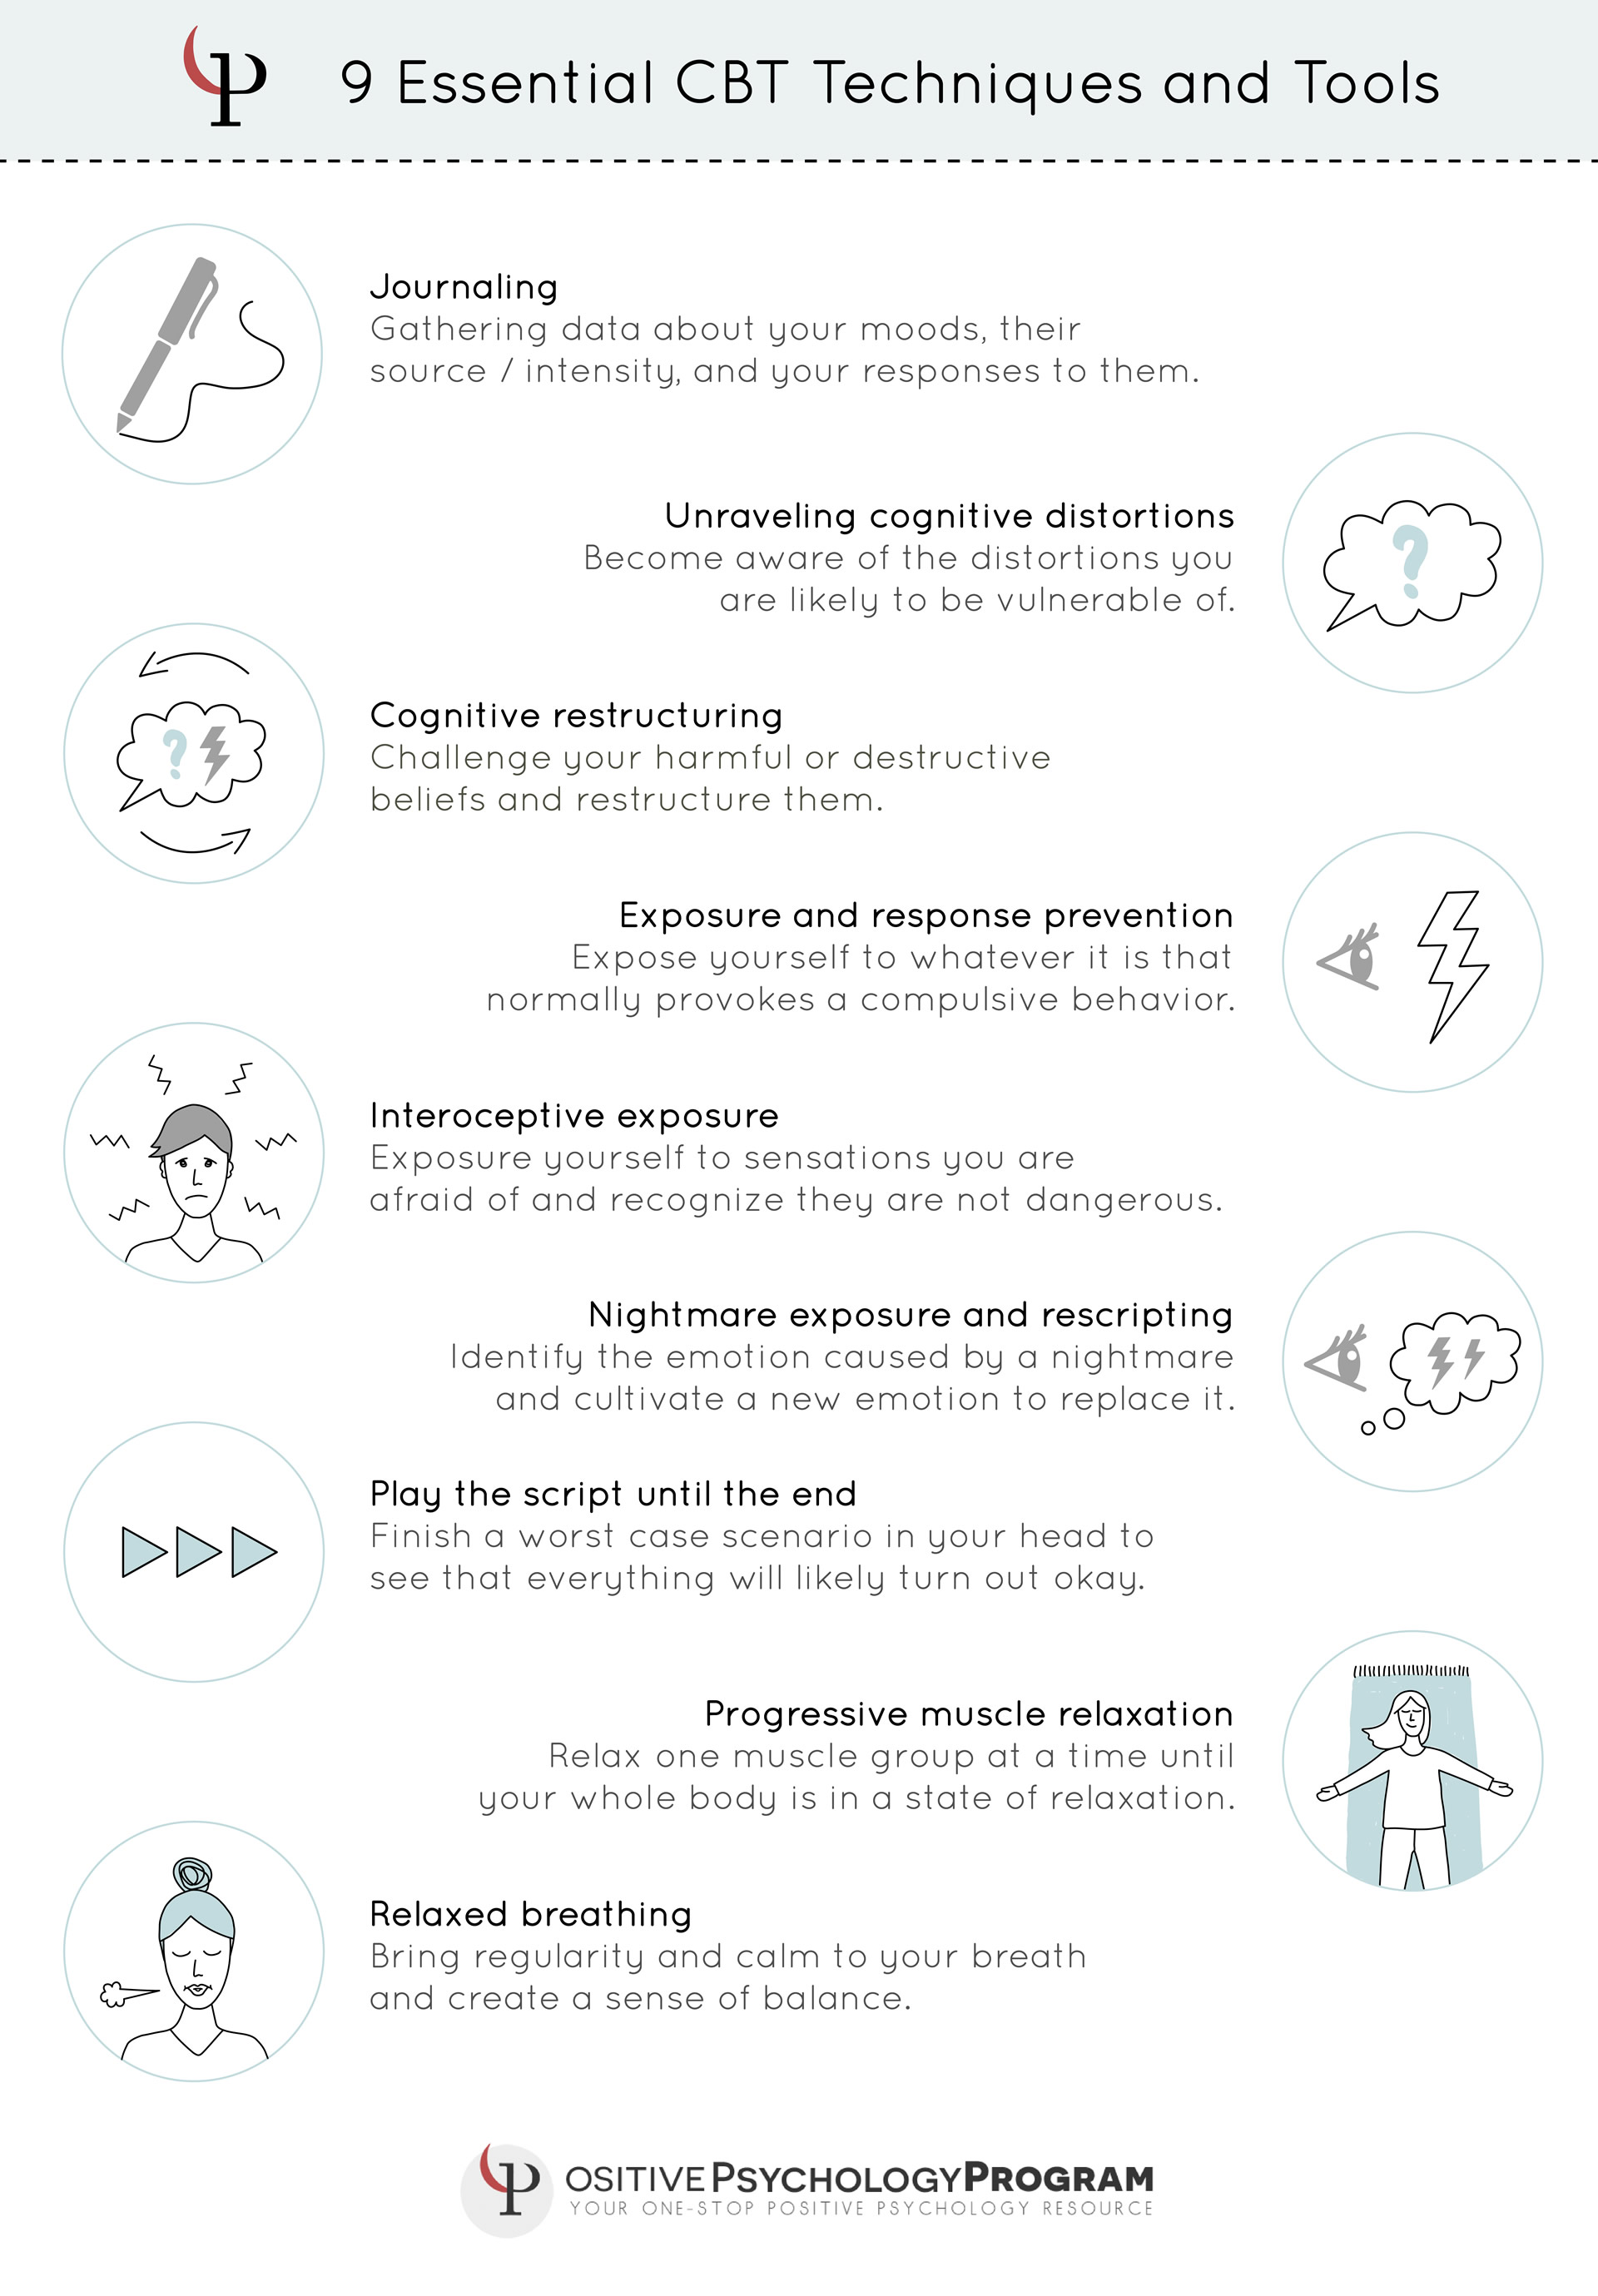 Worksheets Cognitive Restructuring Worksheet 25 cbt techniques and worksheets for cognitive behavioral therapy 9 essential tools infographic